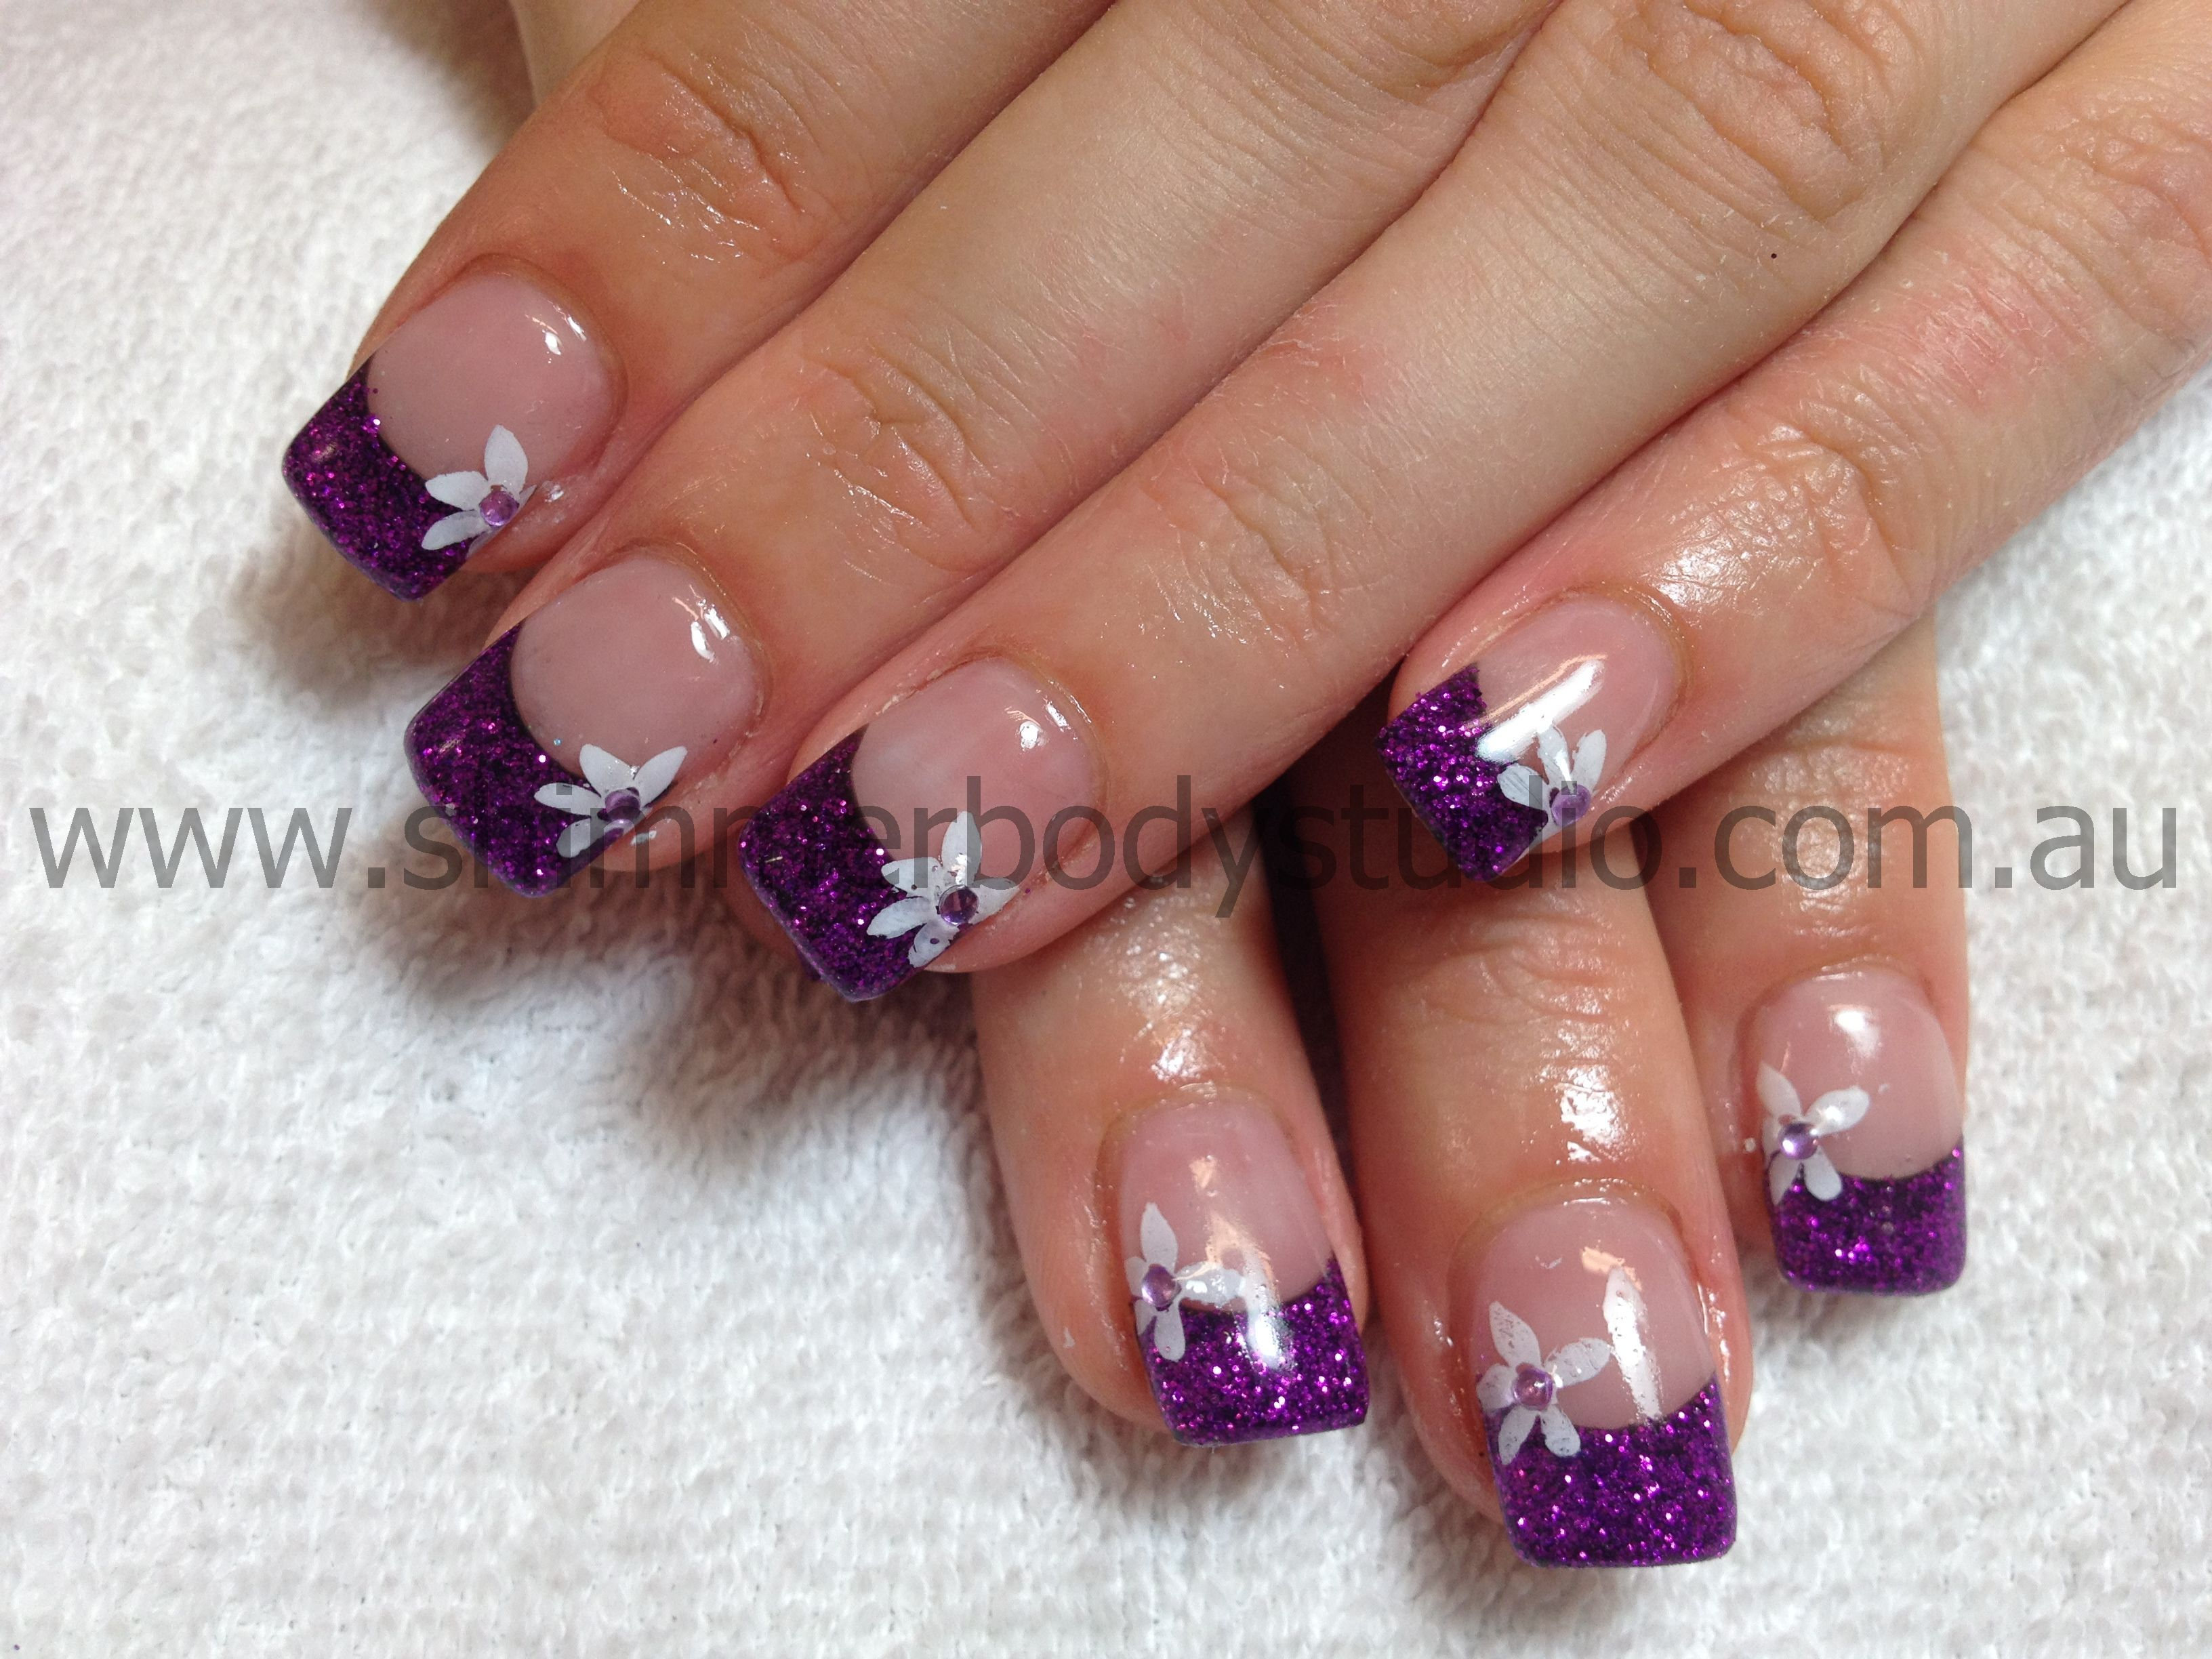 Gel nails, Glitter nails, Purple Nails, Flower Nail Art, Konad ...